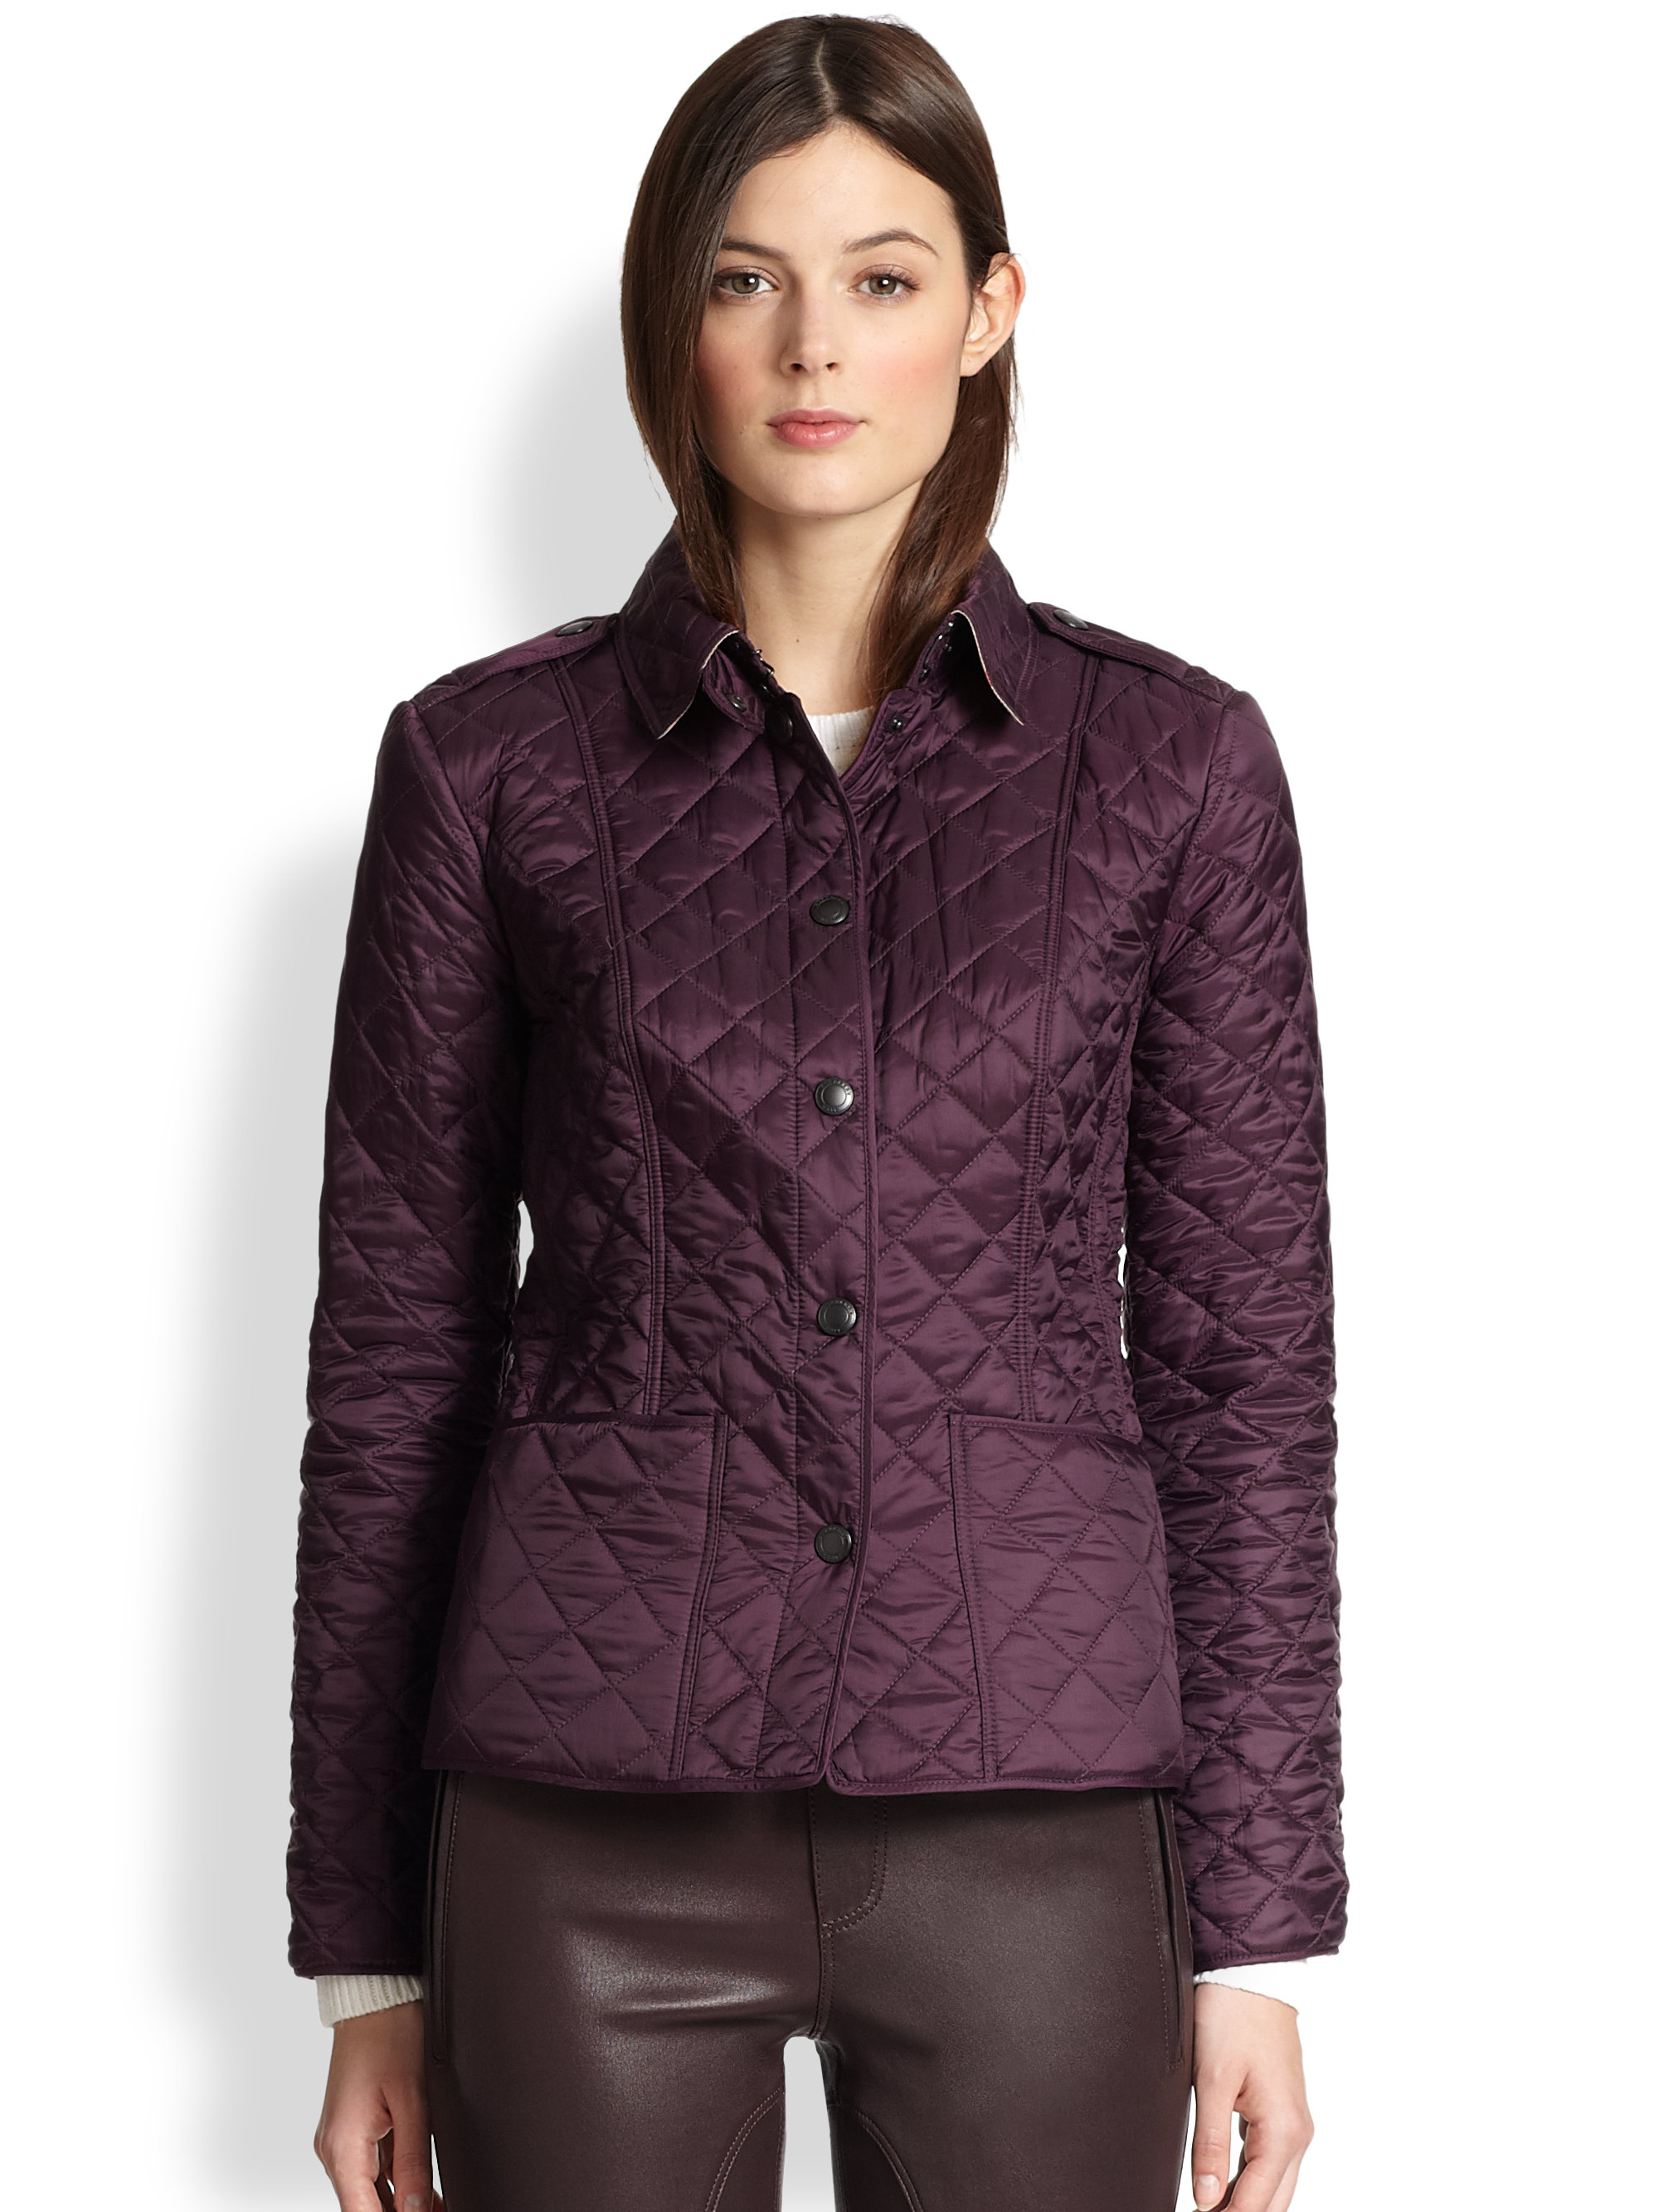 Burberry Kencott Quilted Jacket in Purple | Lyst : burberry purple quilted jacket - Adamdwight.com